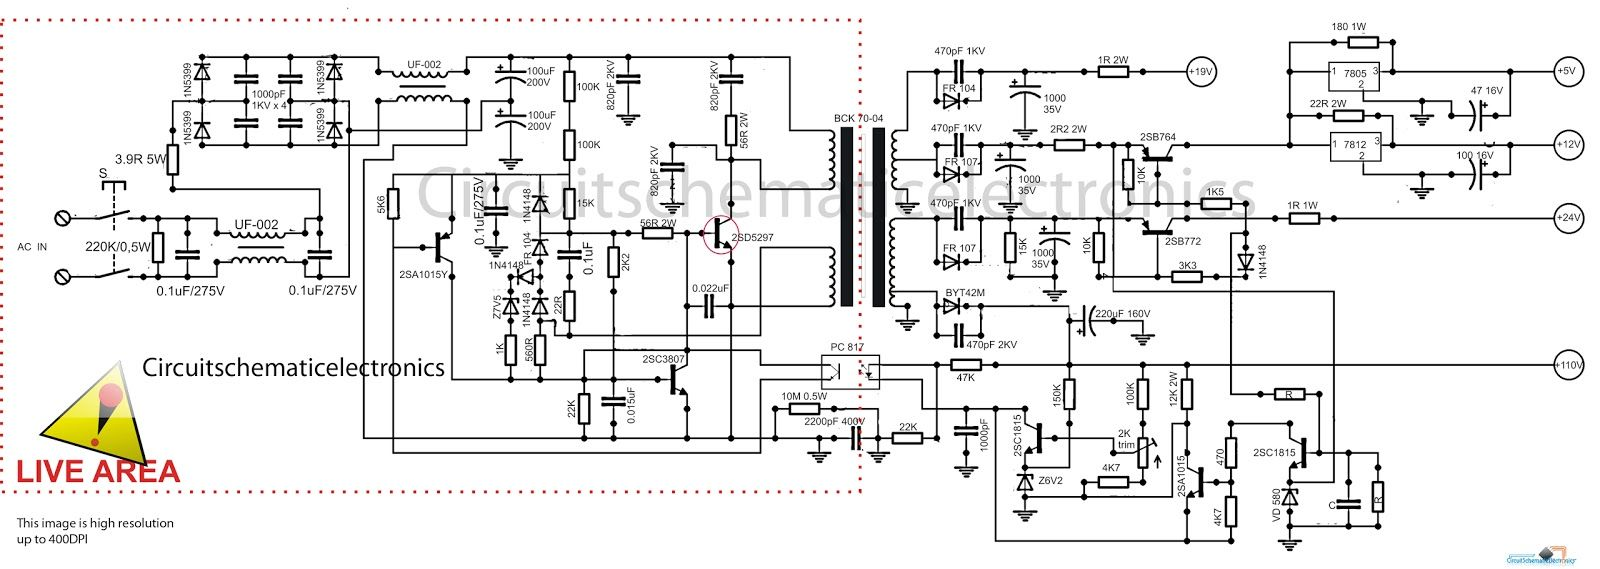 Gm Wire Color For Switched On Power Data Schema Samsung Omnia I900 Circuit Diagramacura Car Gallery Home Images Smps Diagram Using Mosfet